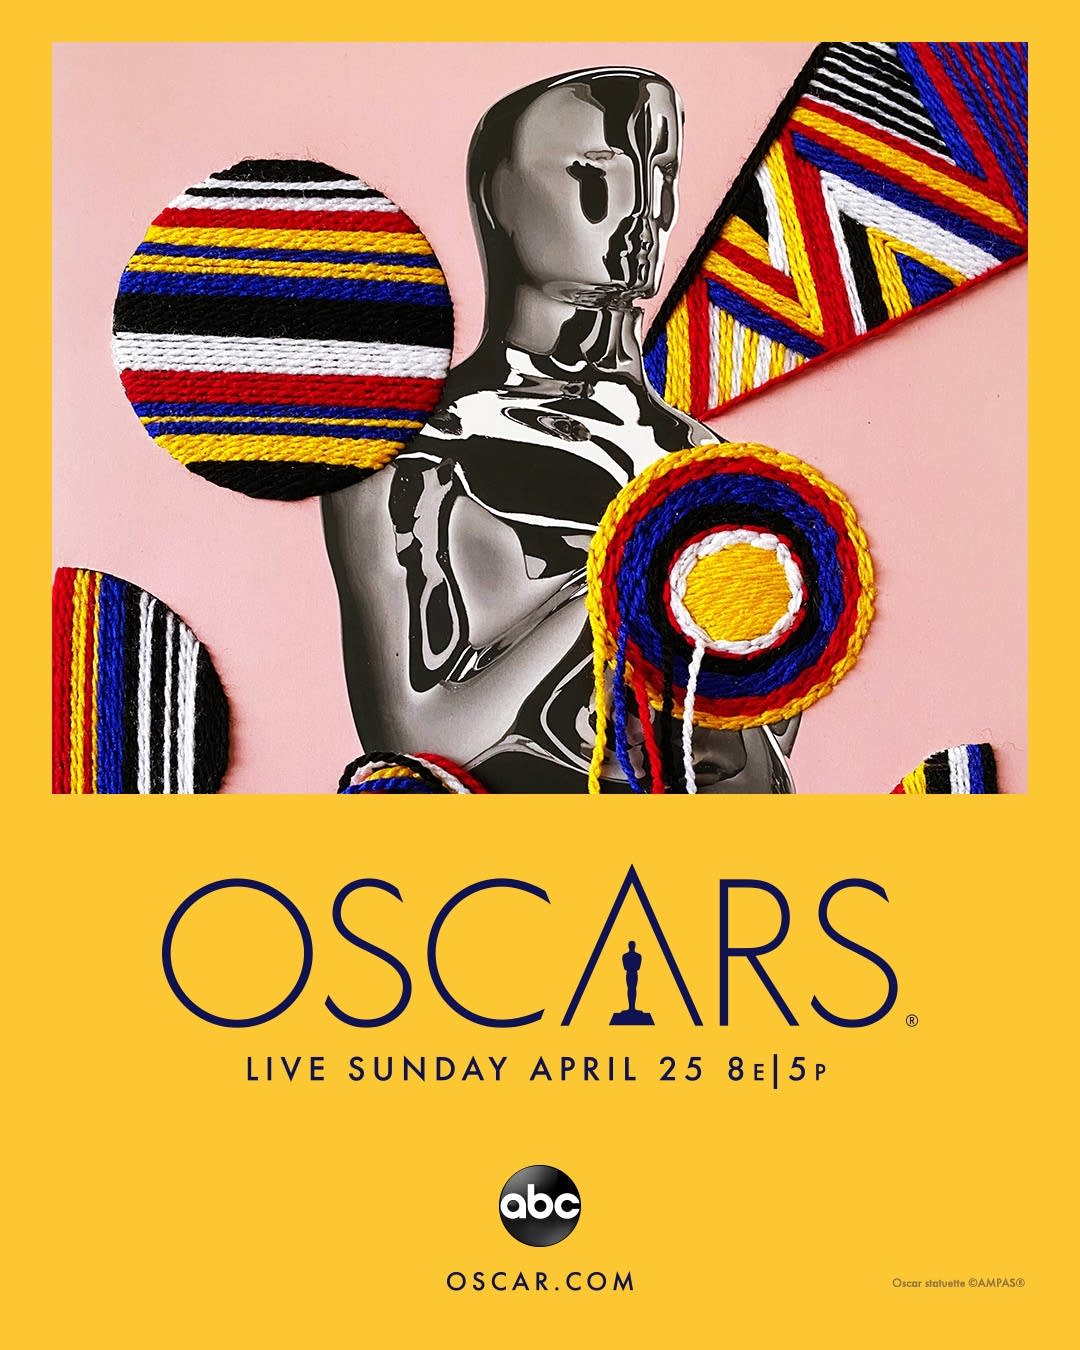 Oscars coverage key art from ABC